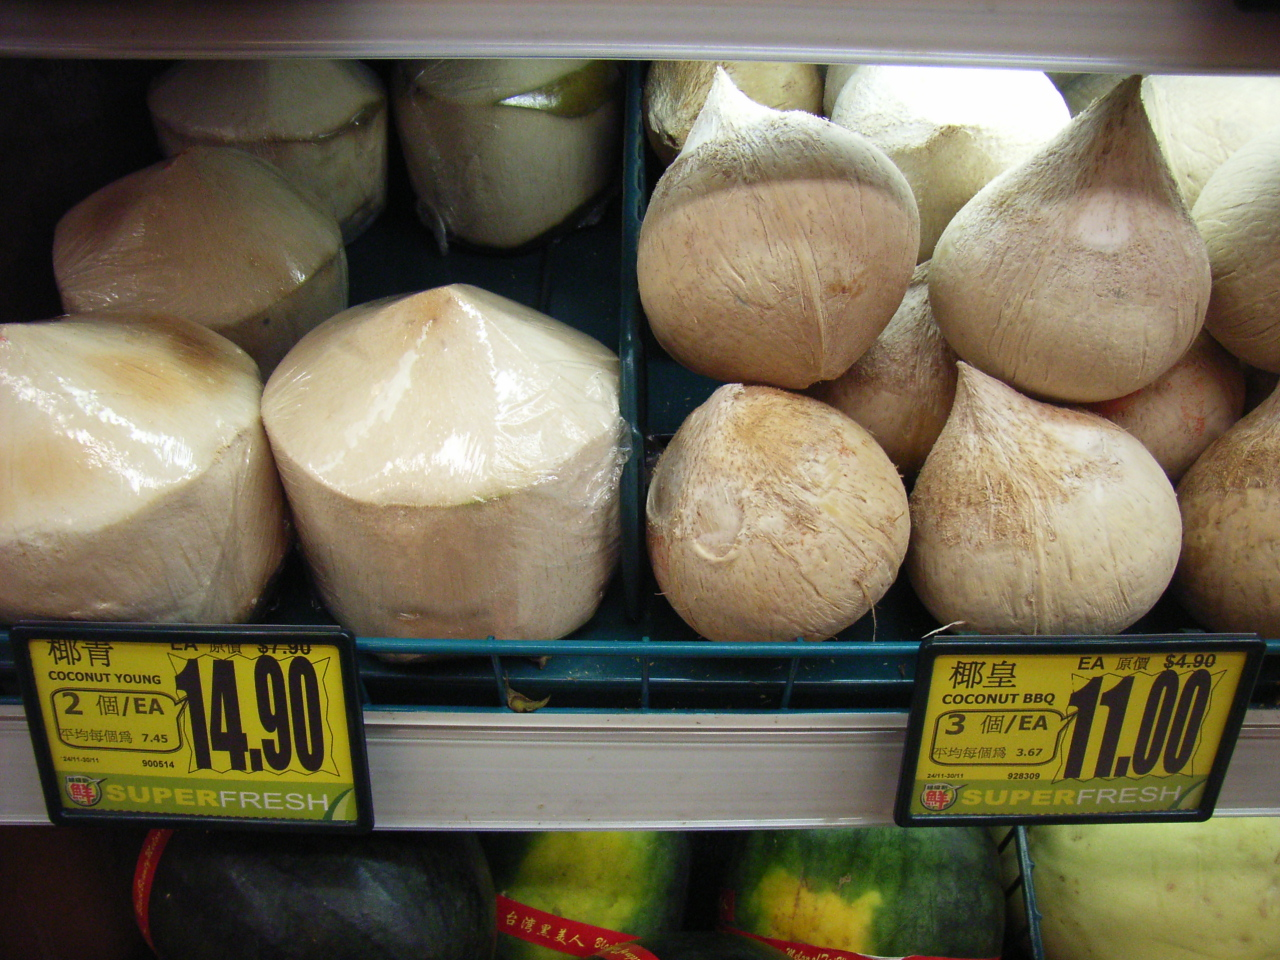 http://upload.wikimedia.org/wikipedia/commons/0/0d/HK_supermarket_Coconut.jpg